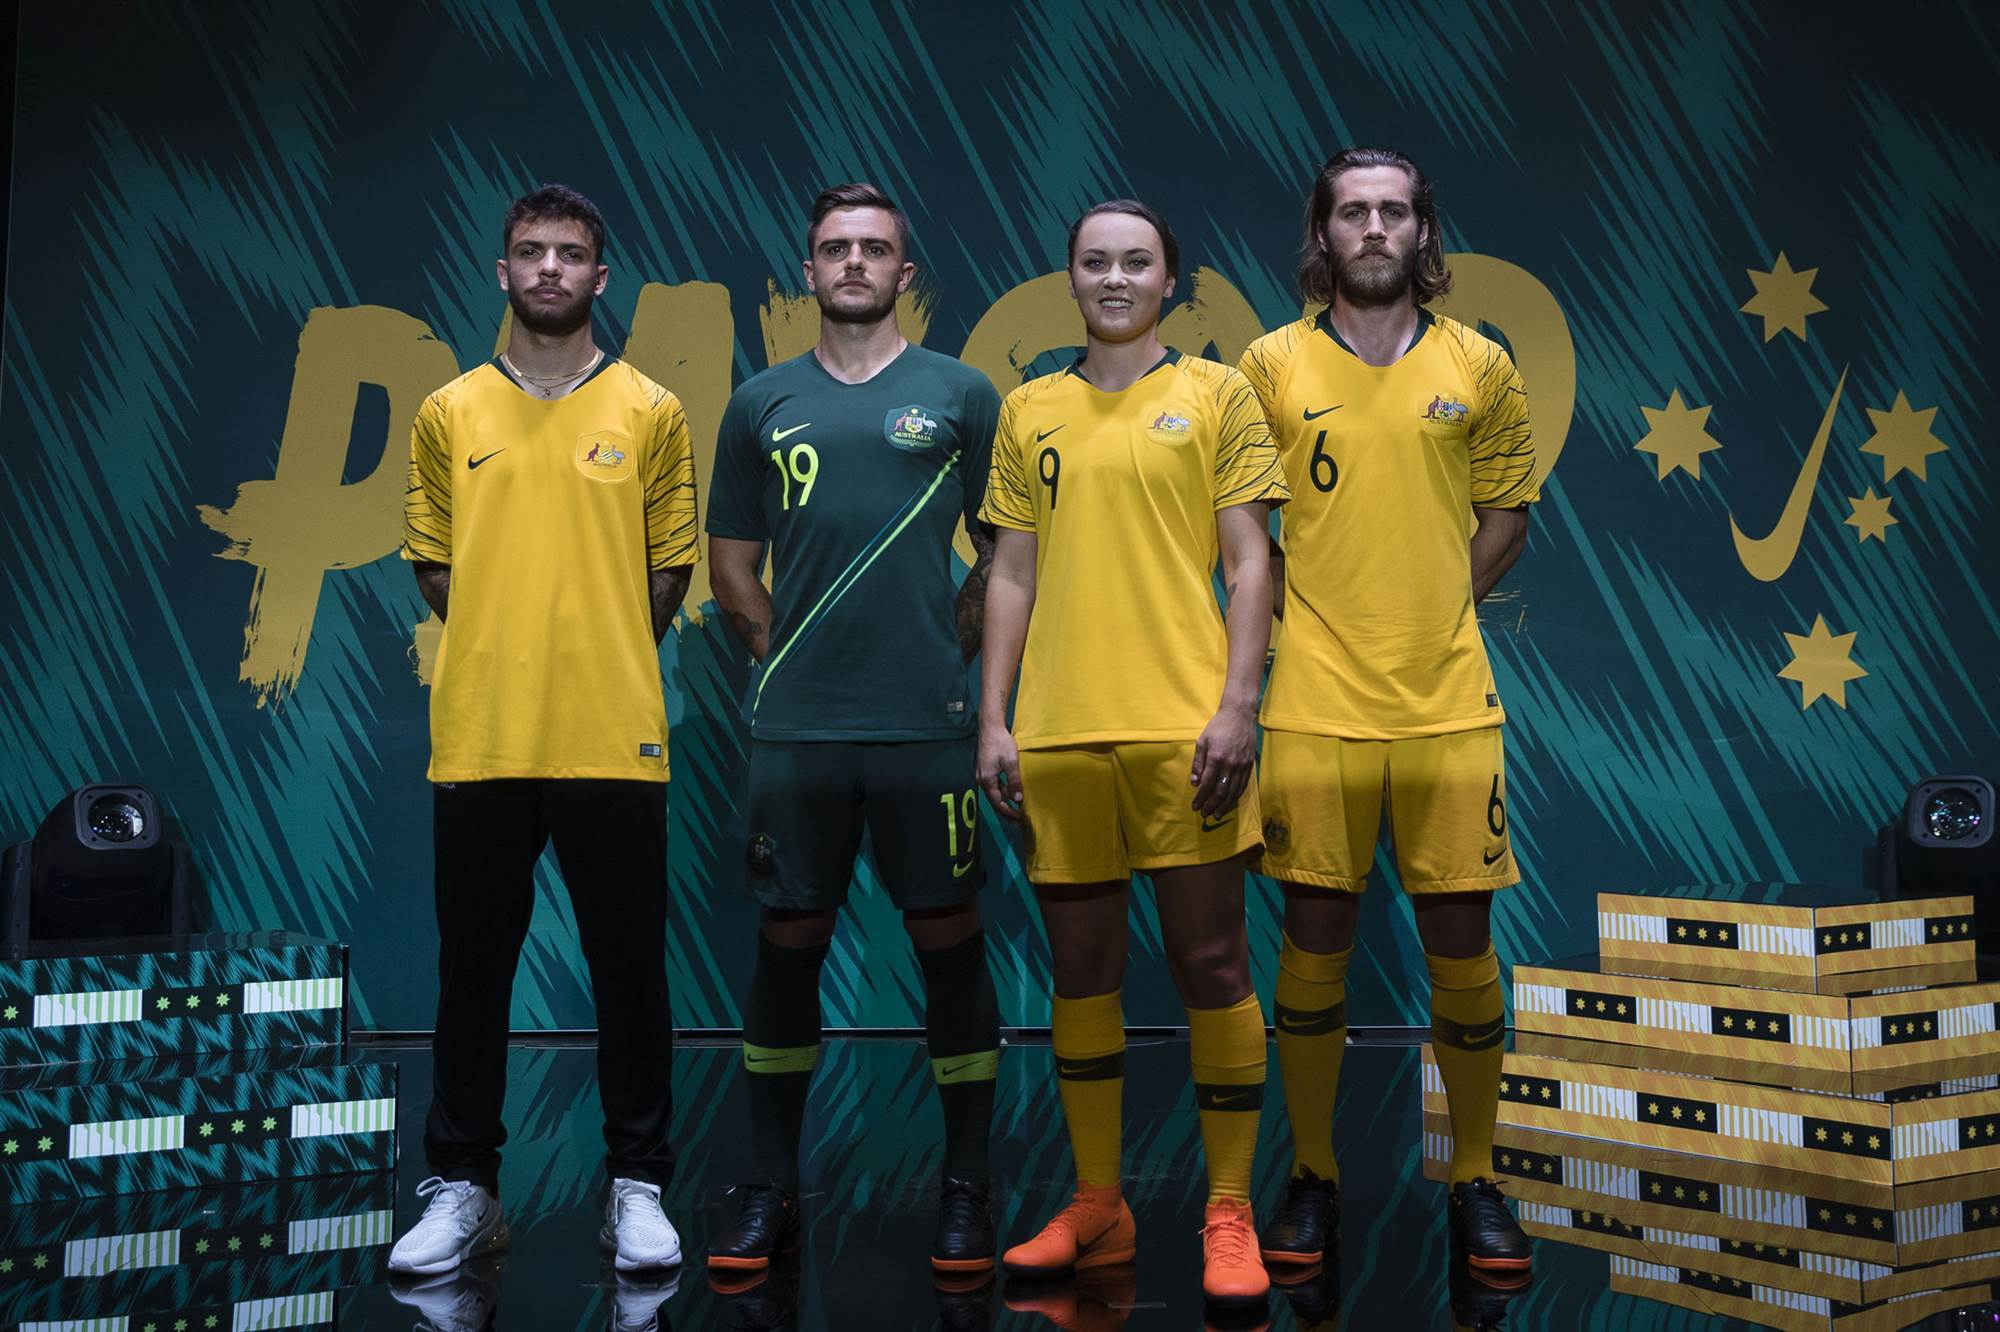 f1f5e57ab75 Socceroos and Matildas kit reveal - FTBL